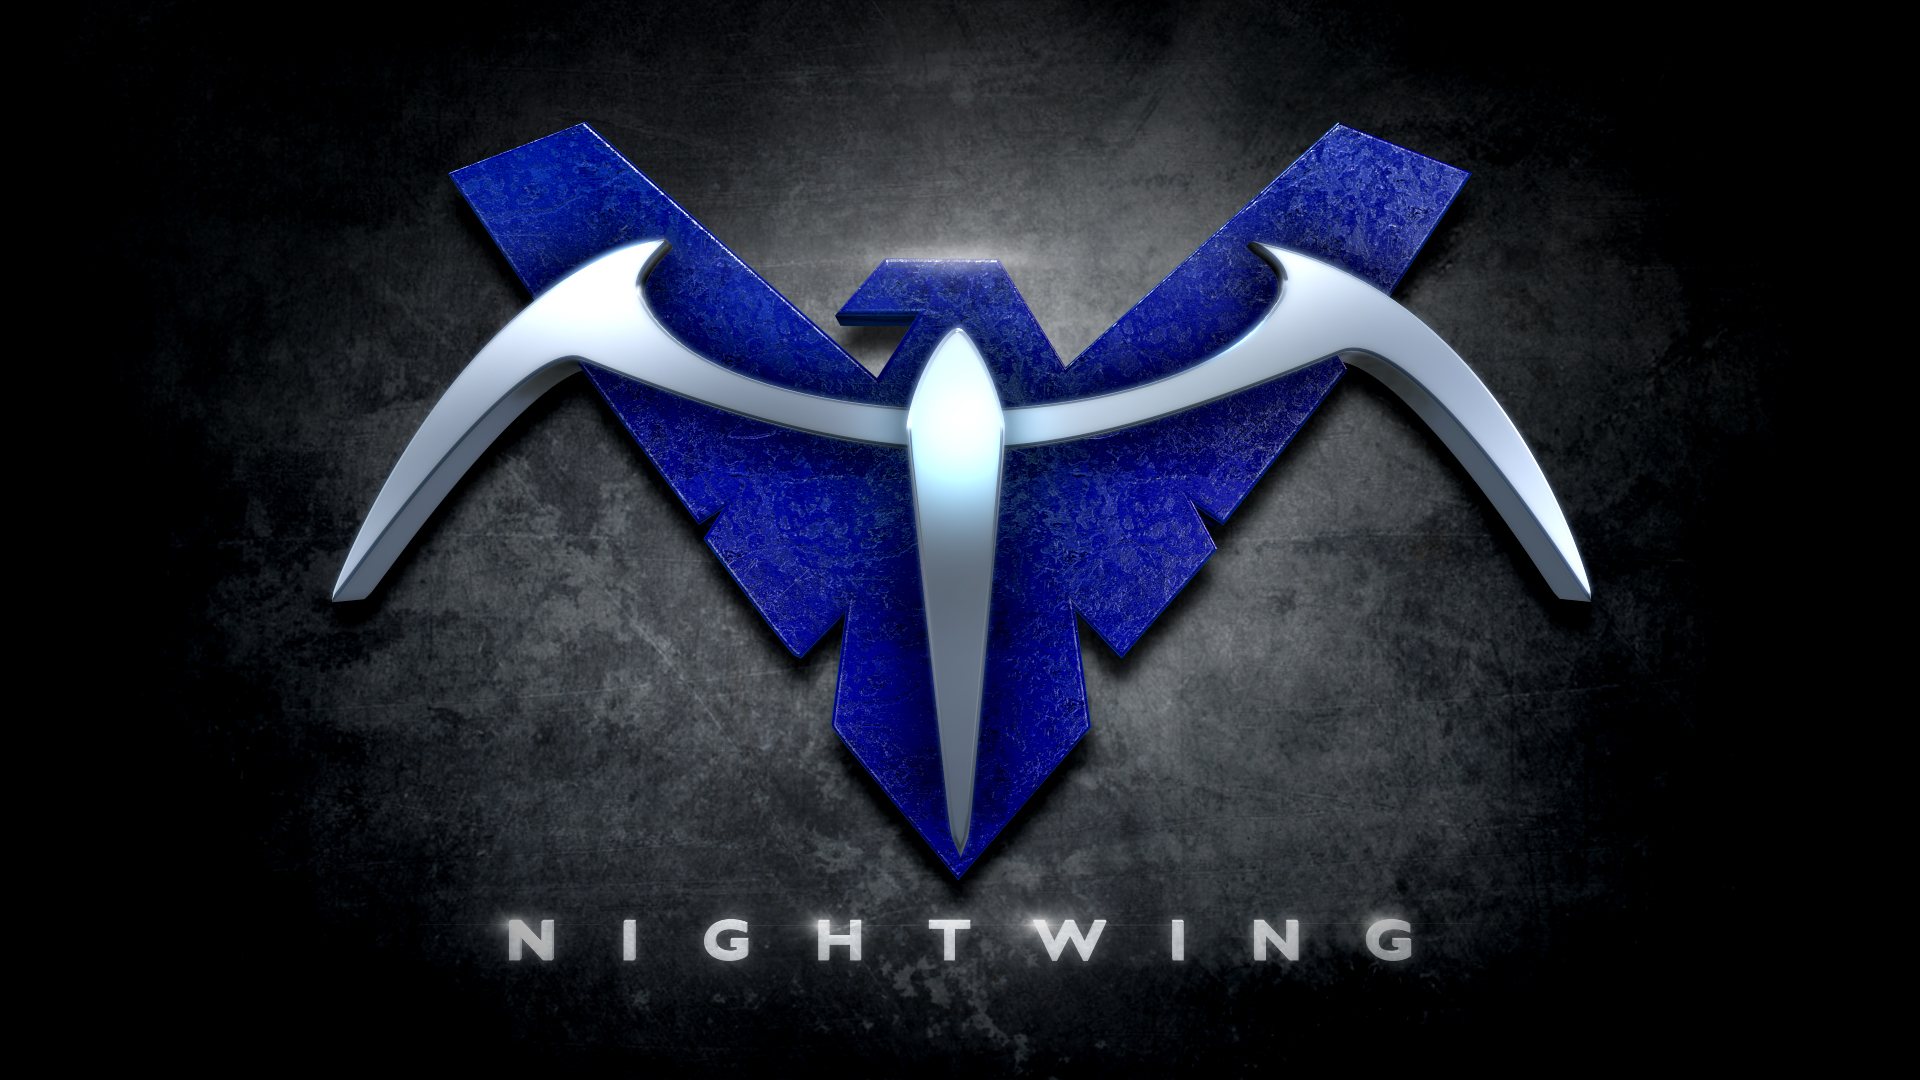 Nightwing Logo Beloeil Jones